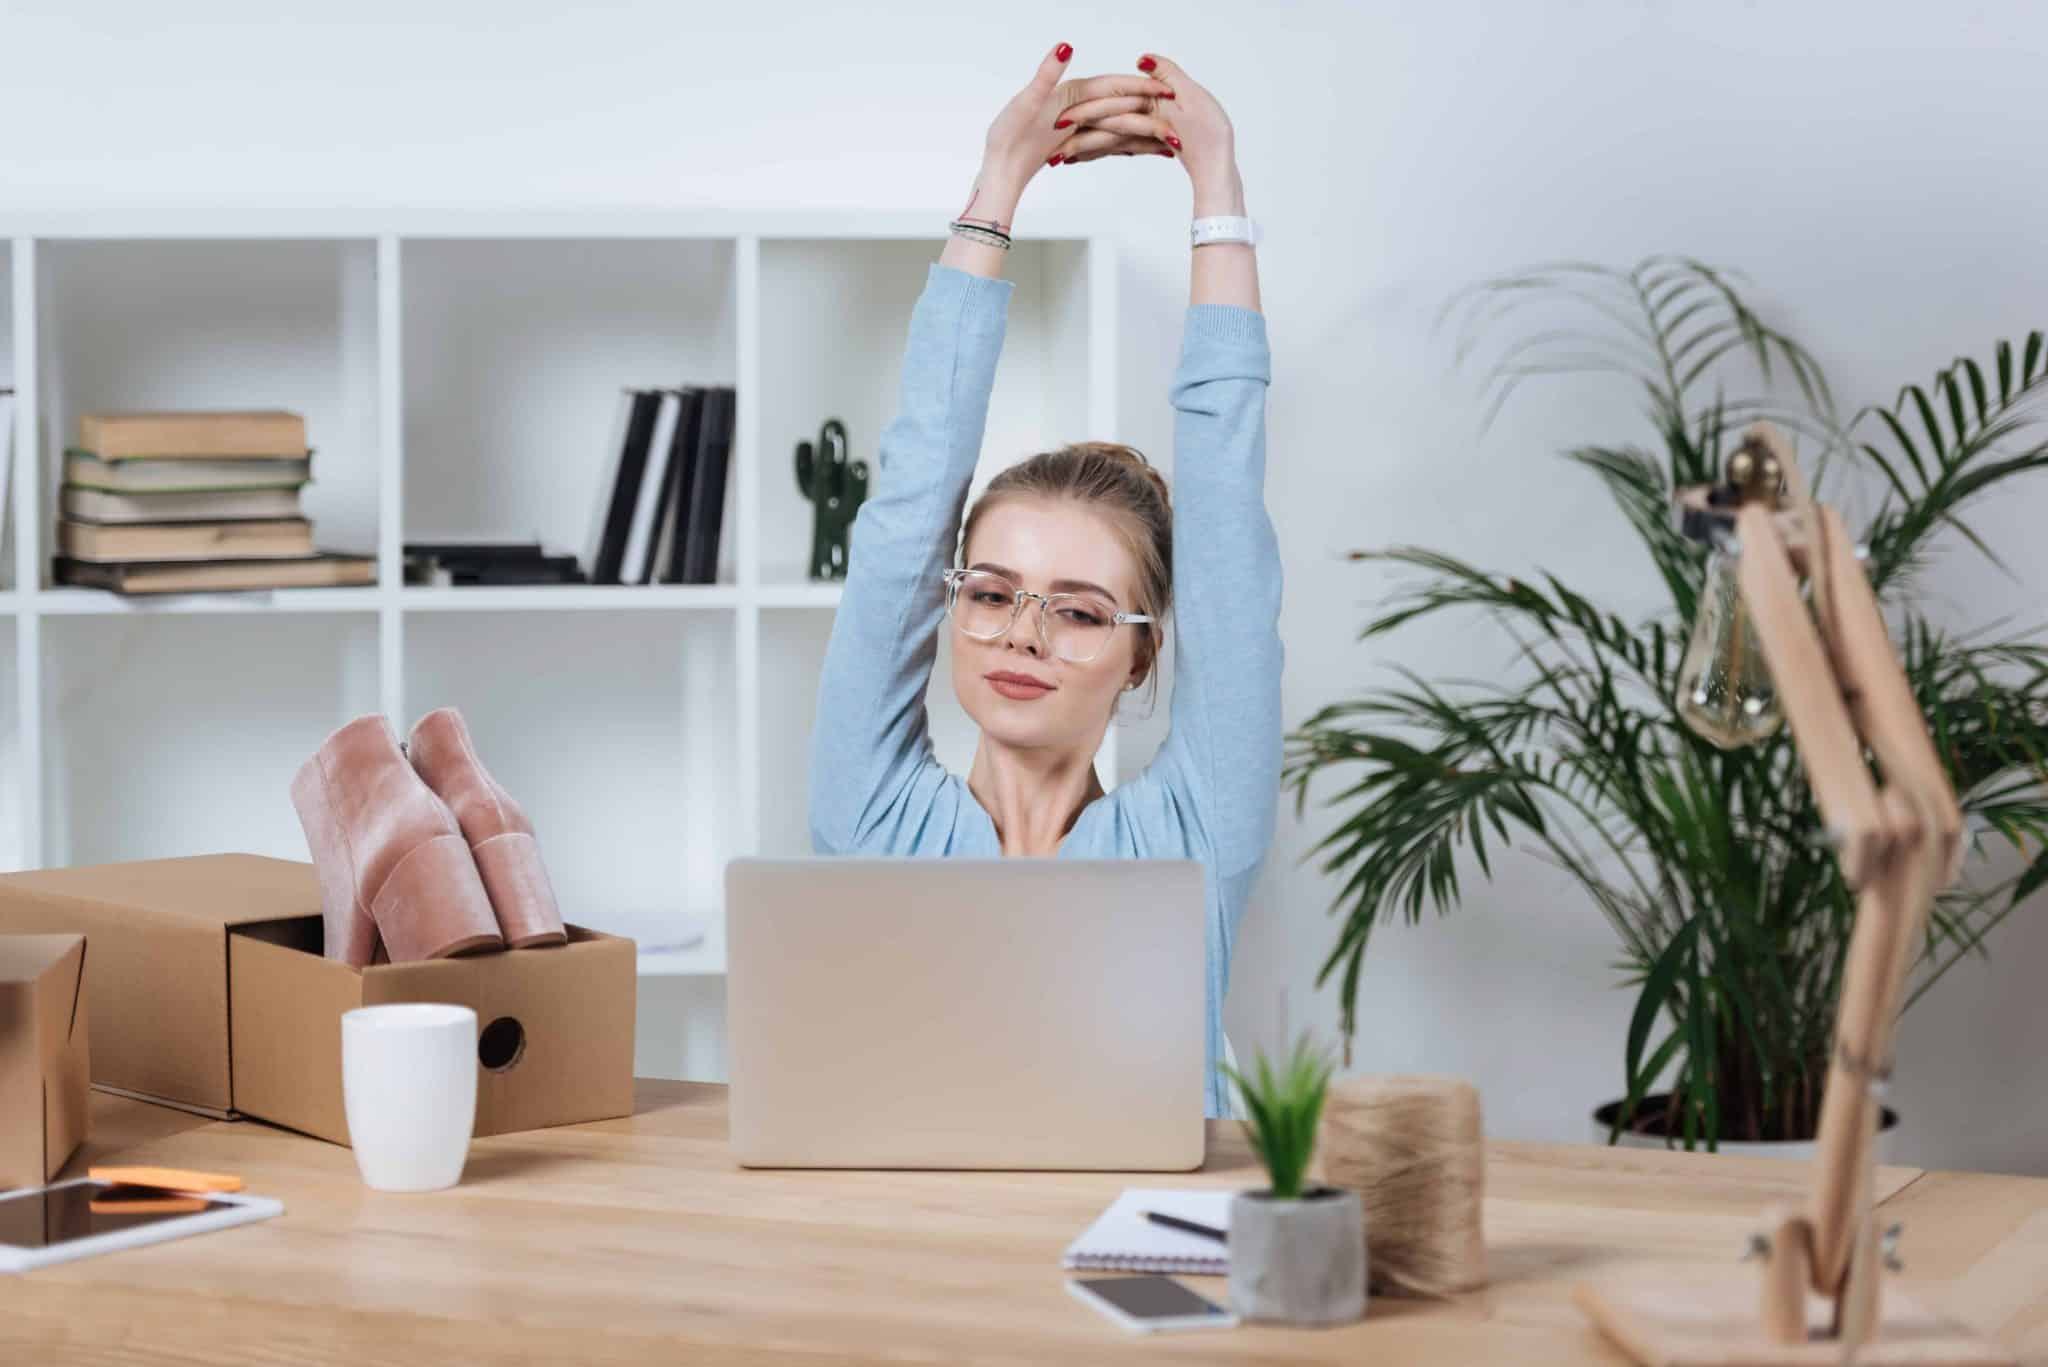 work from home with amazon 9 best flexible work from home jobs for mums in 2019 2905